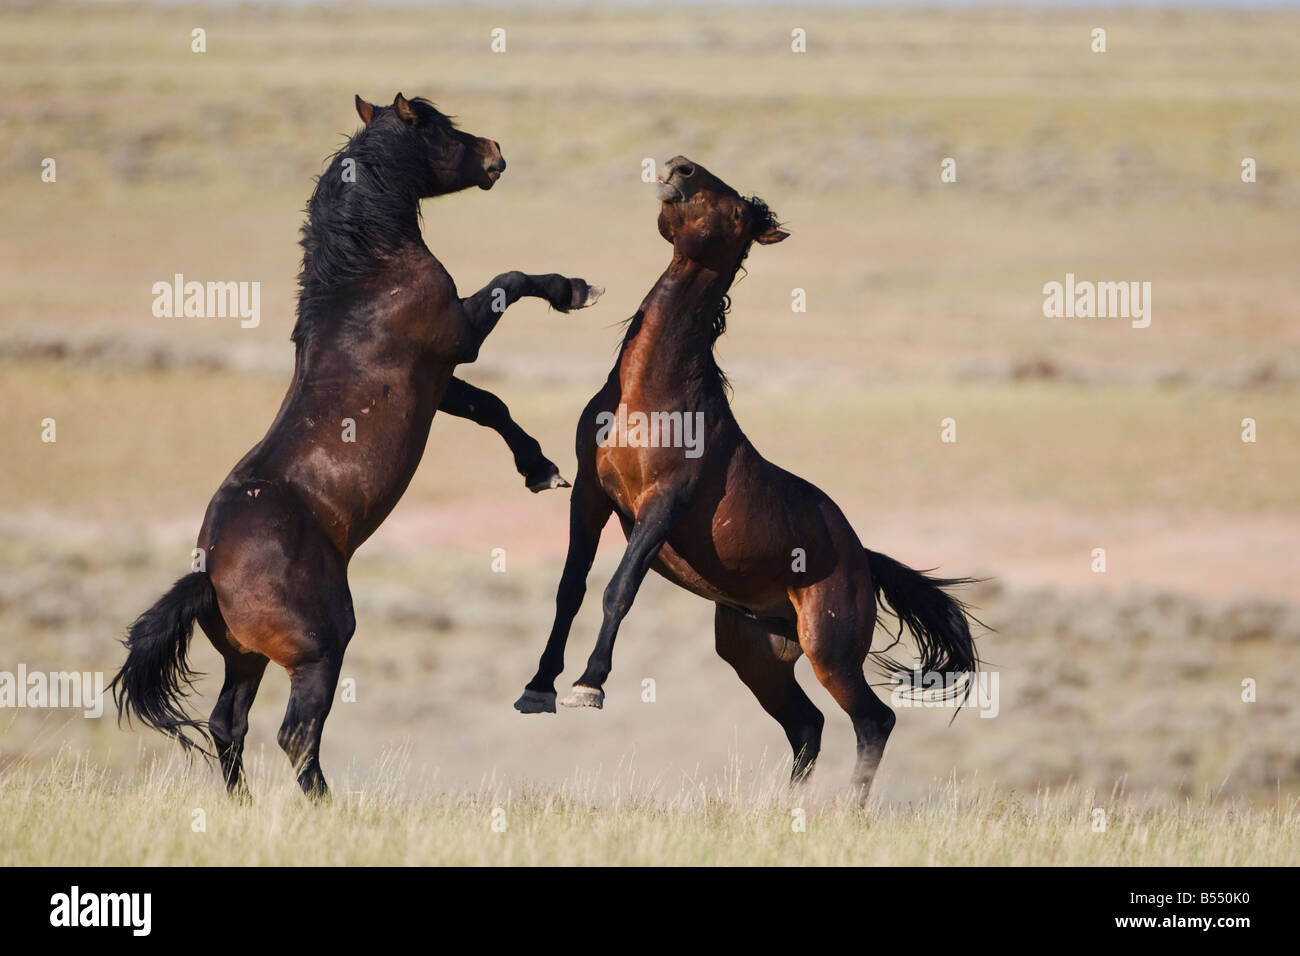 Mustang Horse Equus caballus stallions fighting Pryor Mountain Wild Horse Range Montana USA - Stock Image